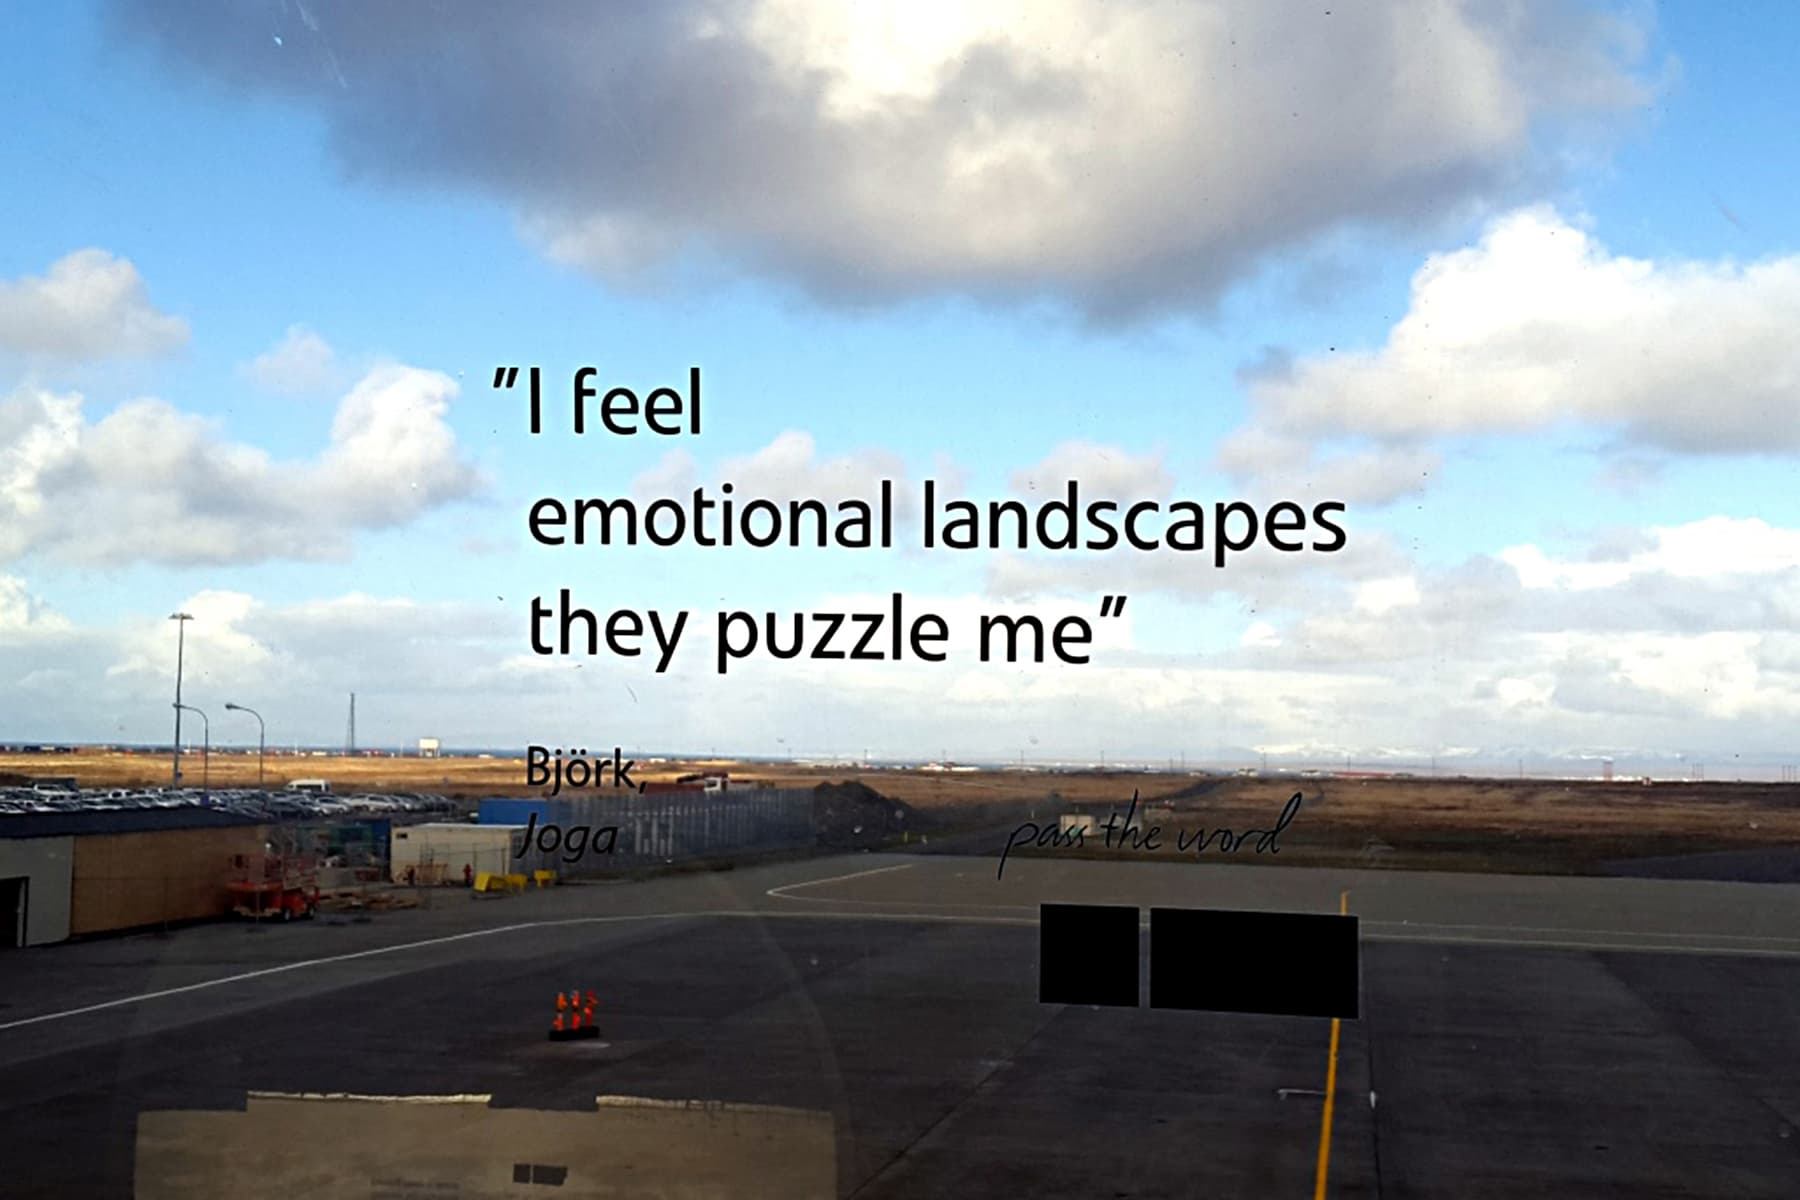 Pass the word: Keflavik International Airport is decorated with Icelandic sayings and quotes. Here, songwriter Bjork's lyrics are a perfect away to wrap the trip.